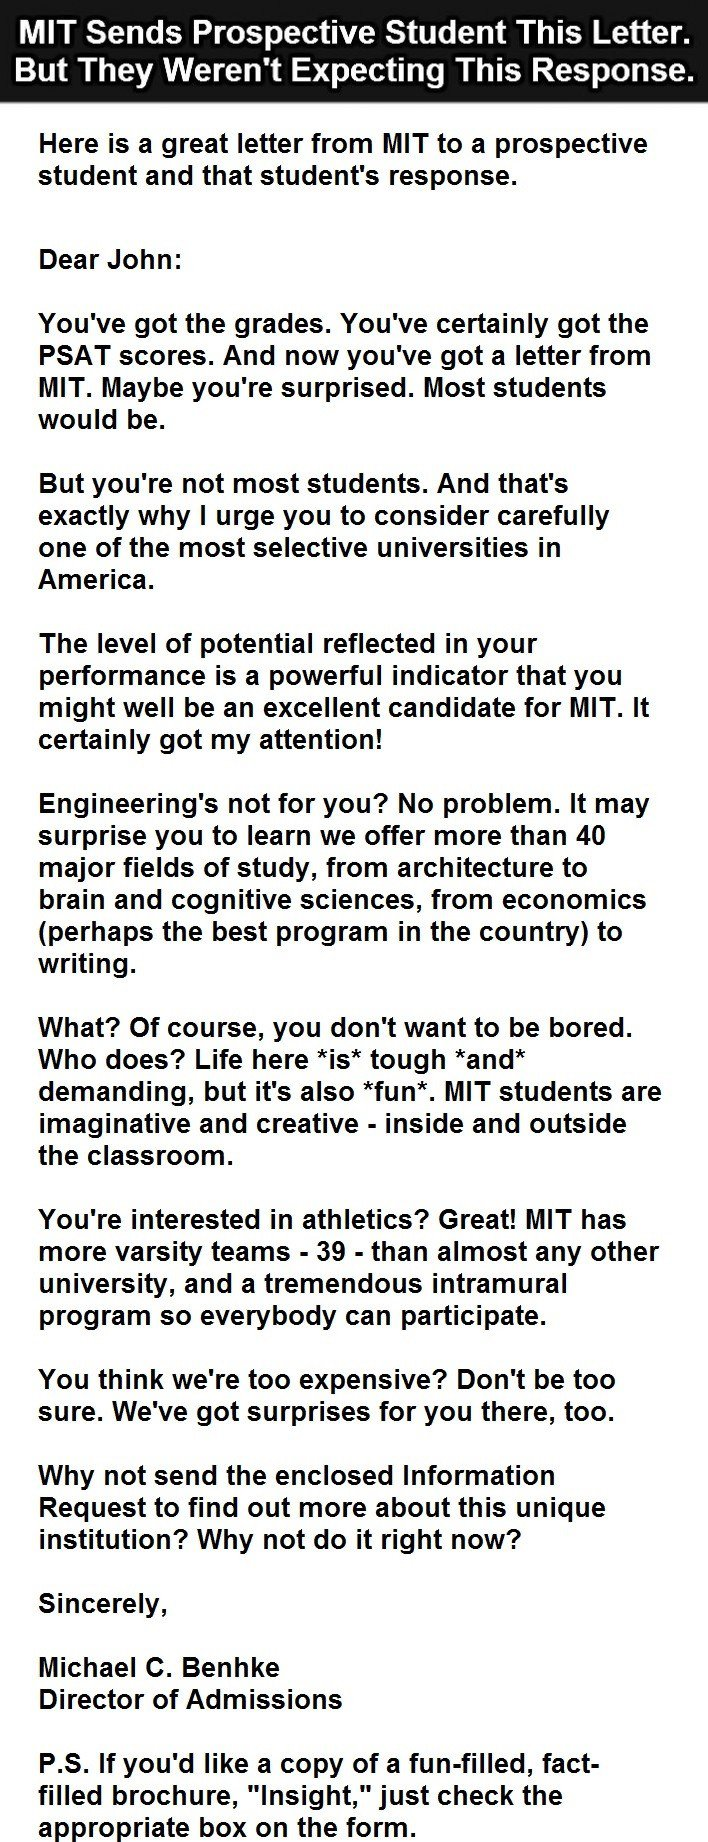 The student's response to MIT's letter is just priceless